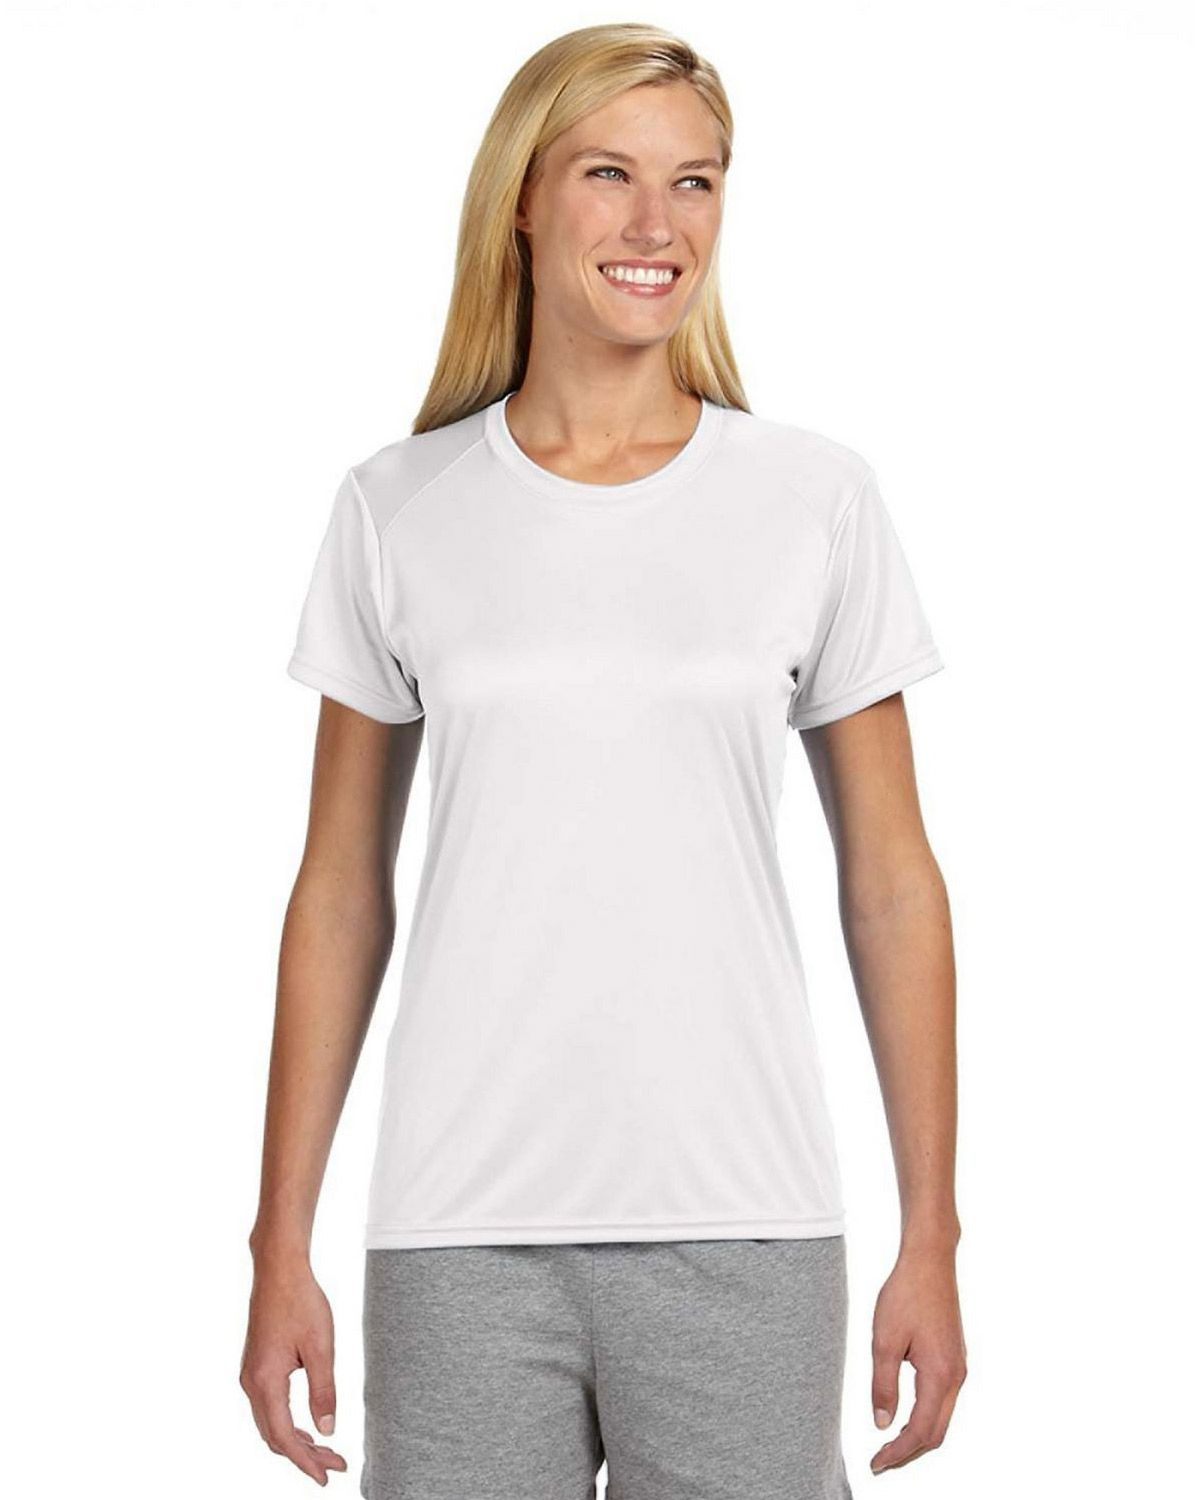 A4 NW3201 Women's Cooling Performance Tee